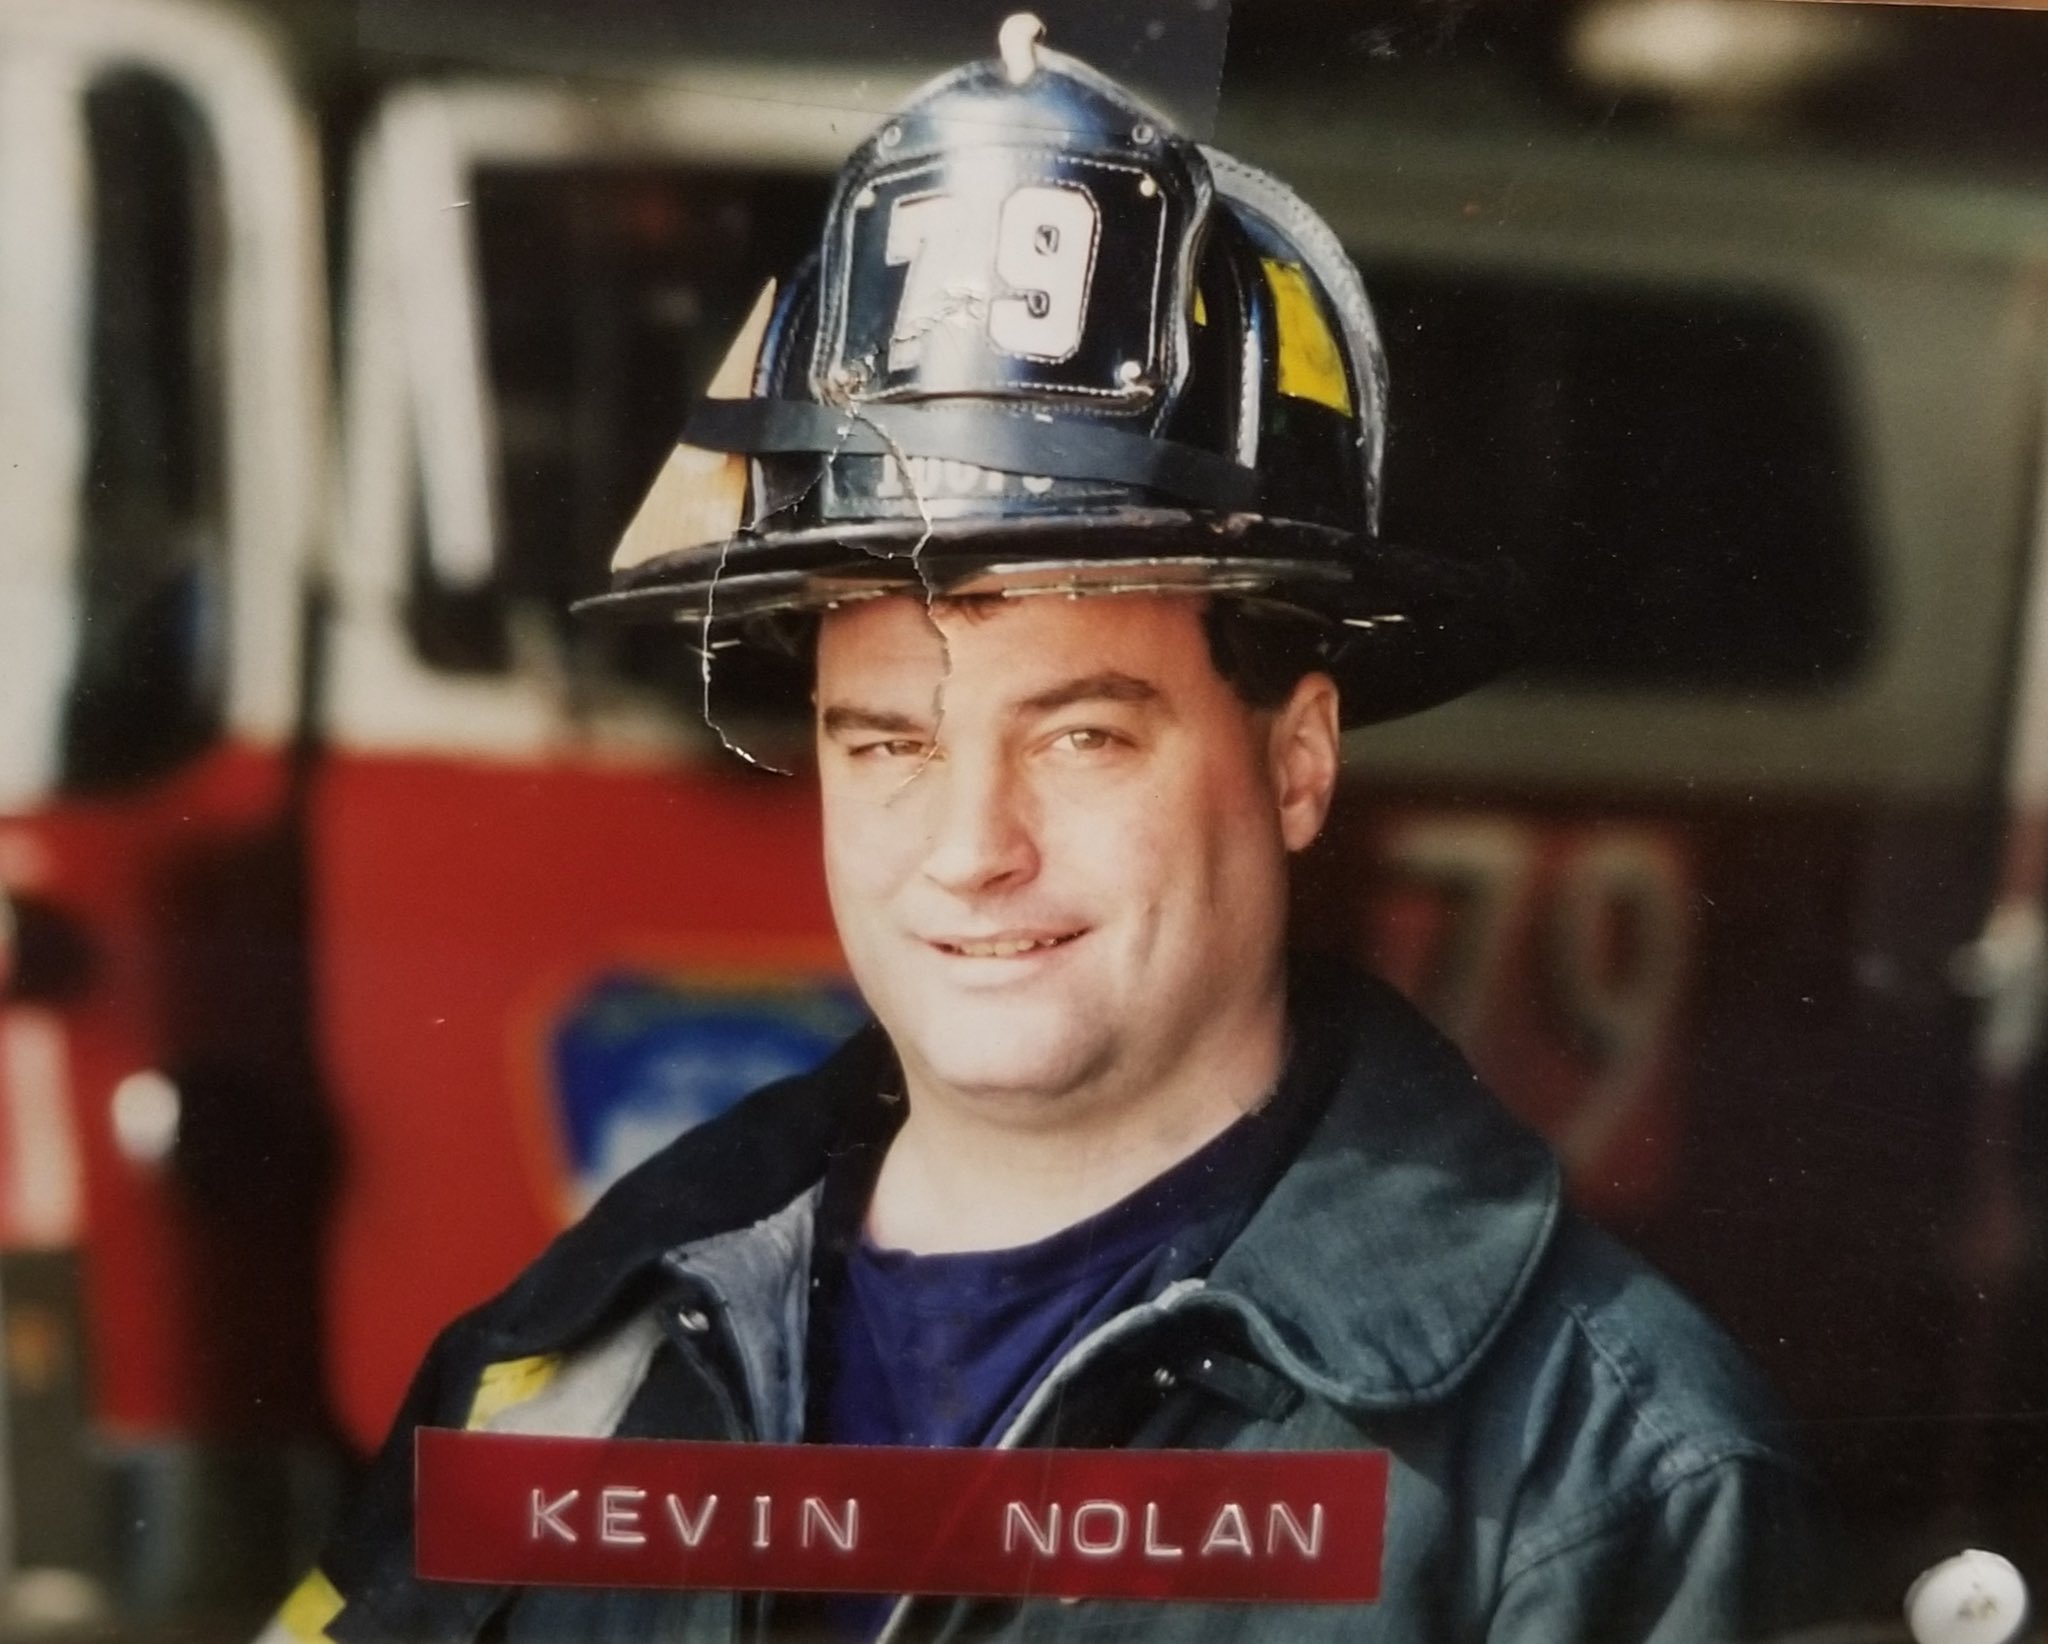 Kevin Nolan firefighter